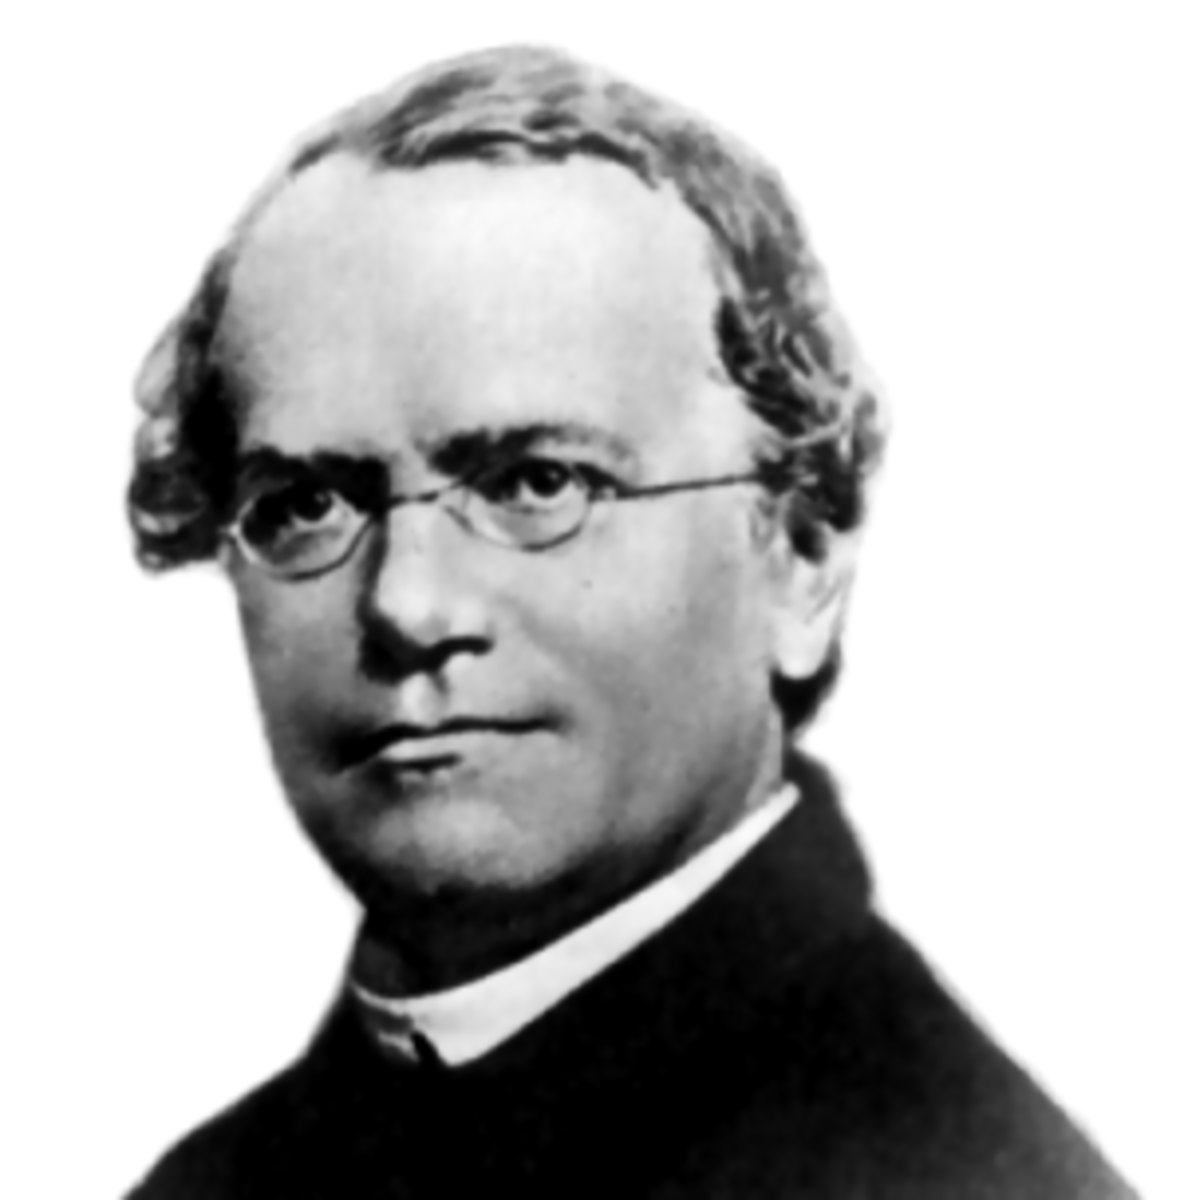 Biography of Johann Gregor Mendel - Father of Genetics